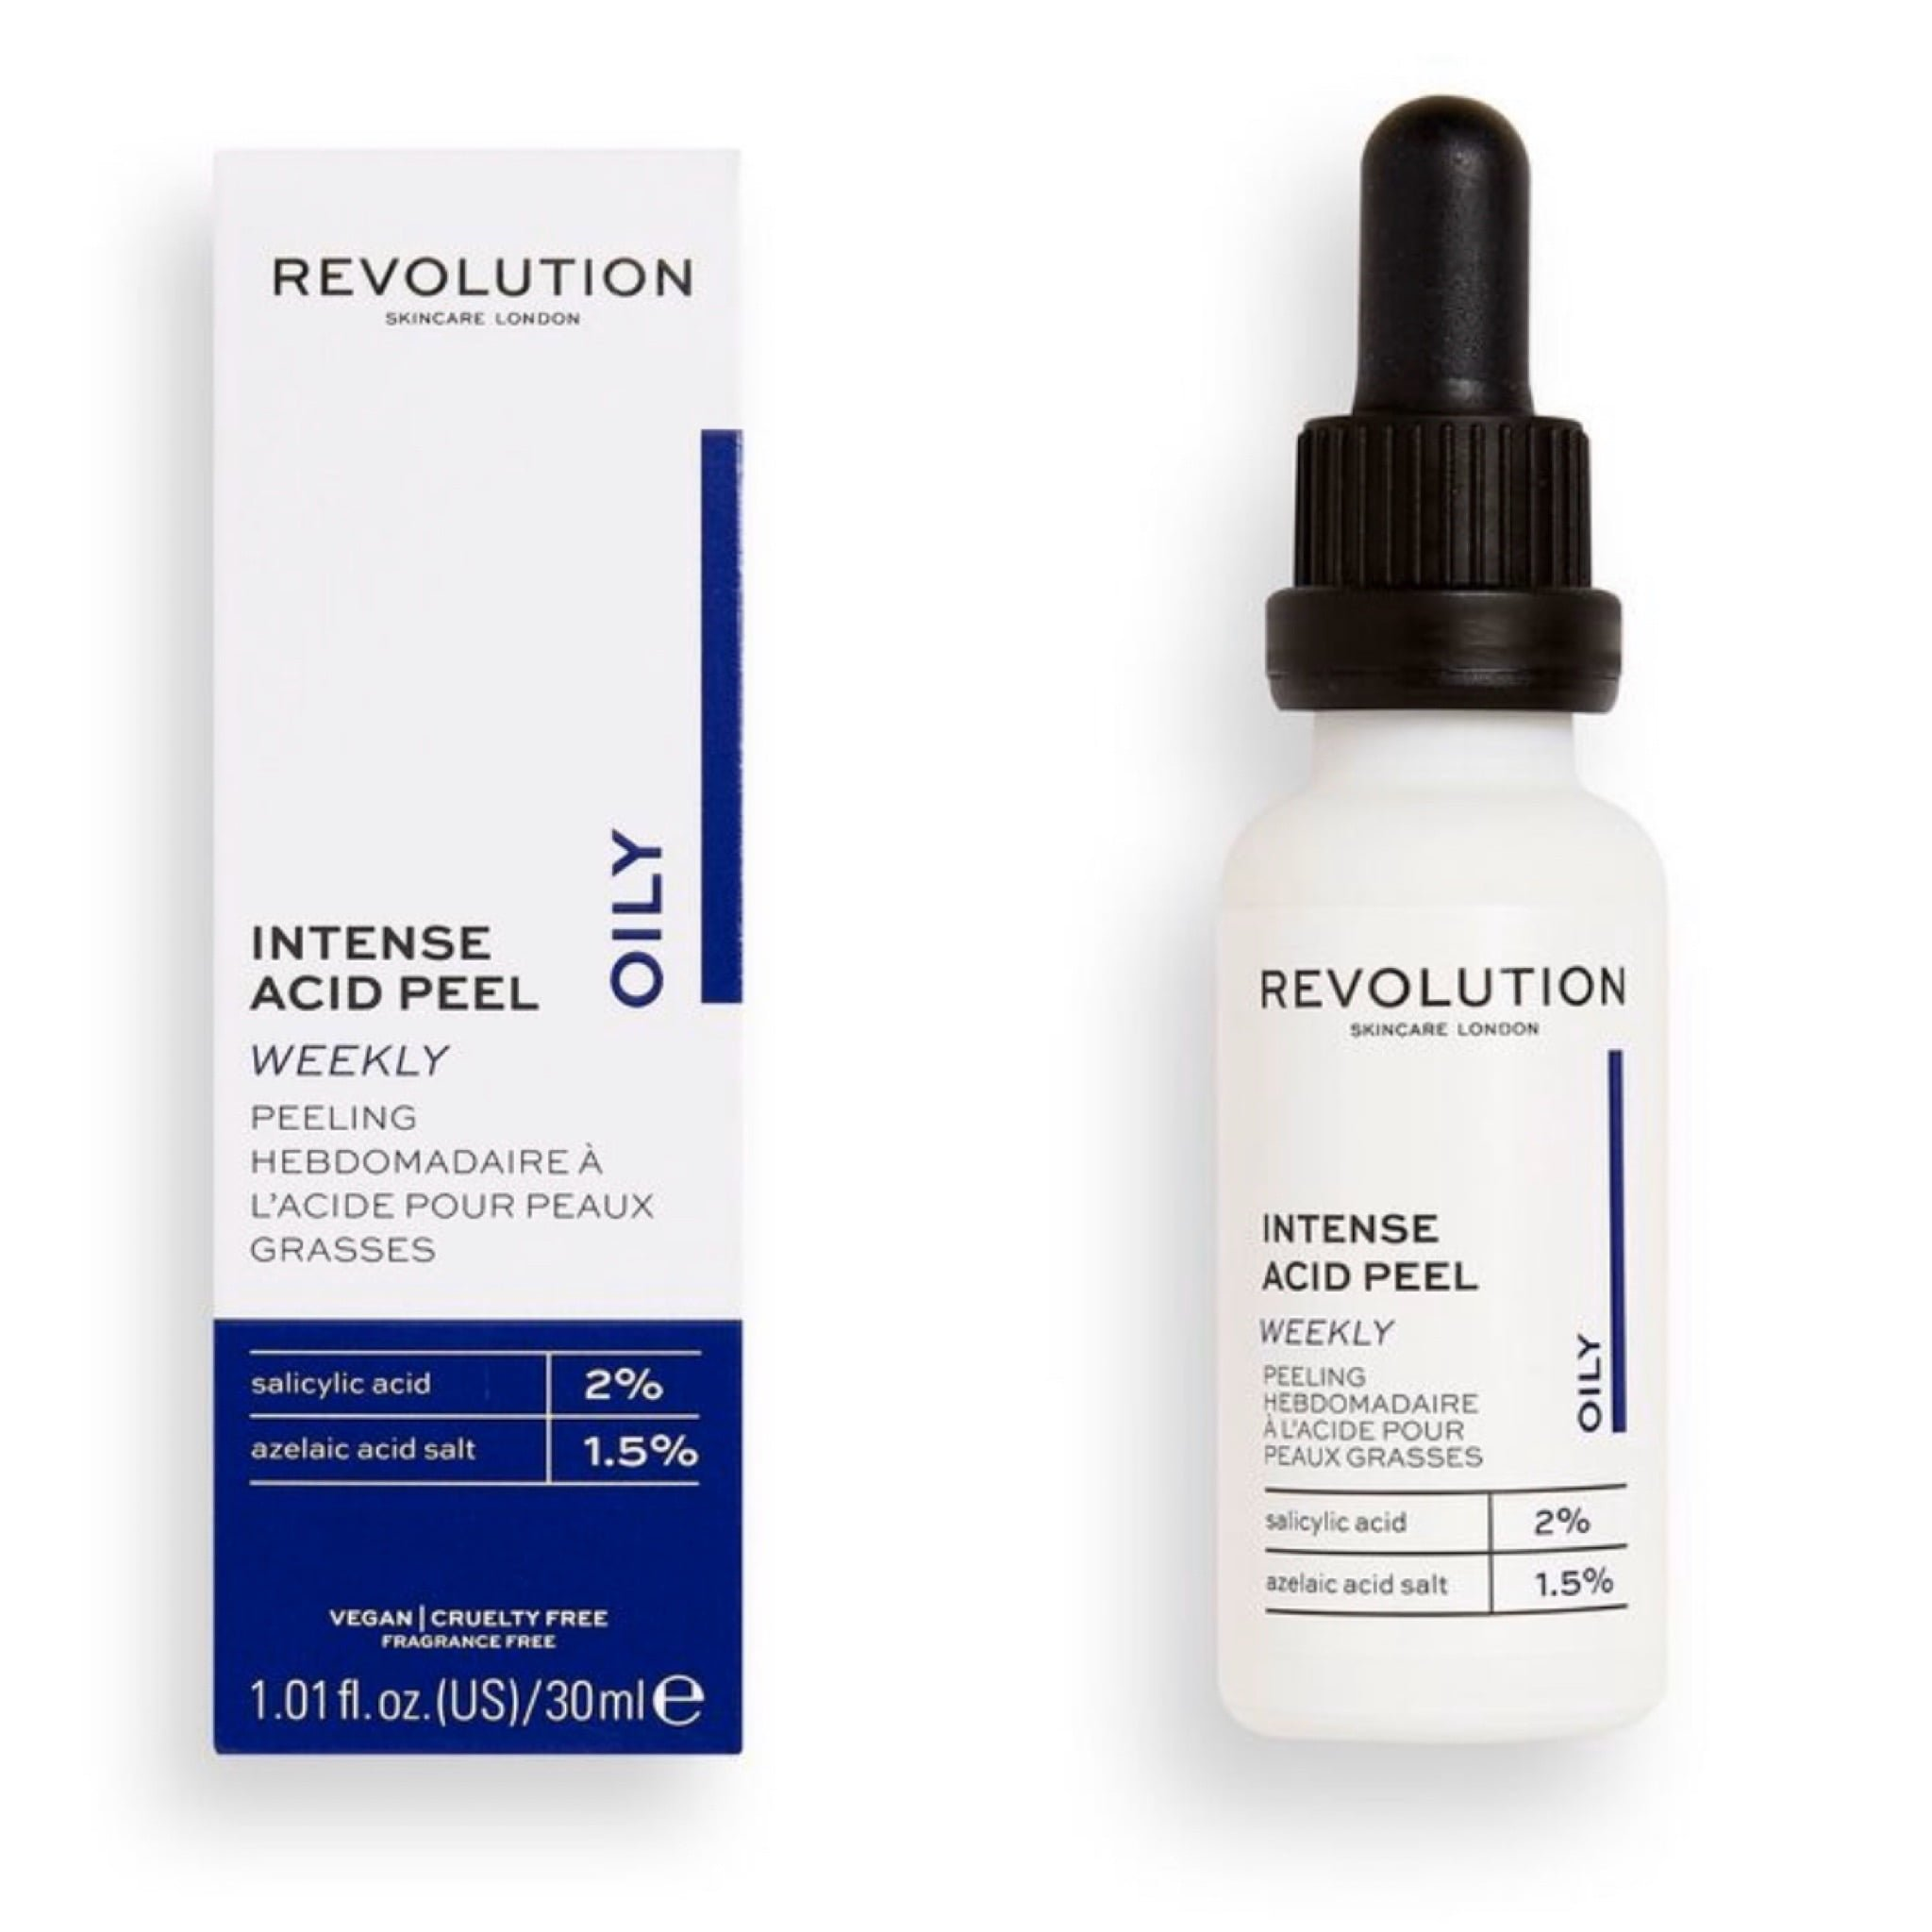 Revolution Skincare Acid Peel Collection | Full Overview